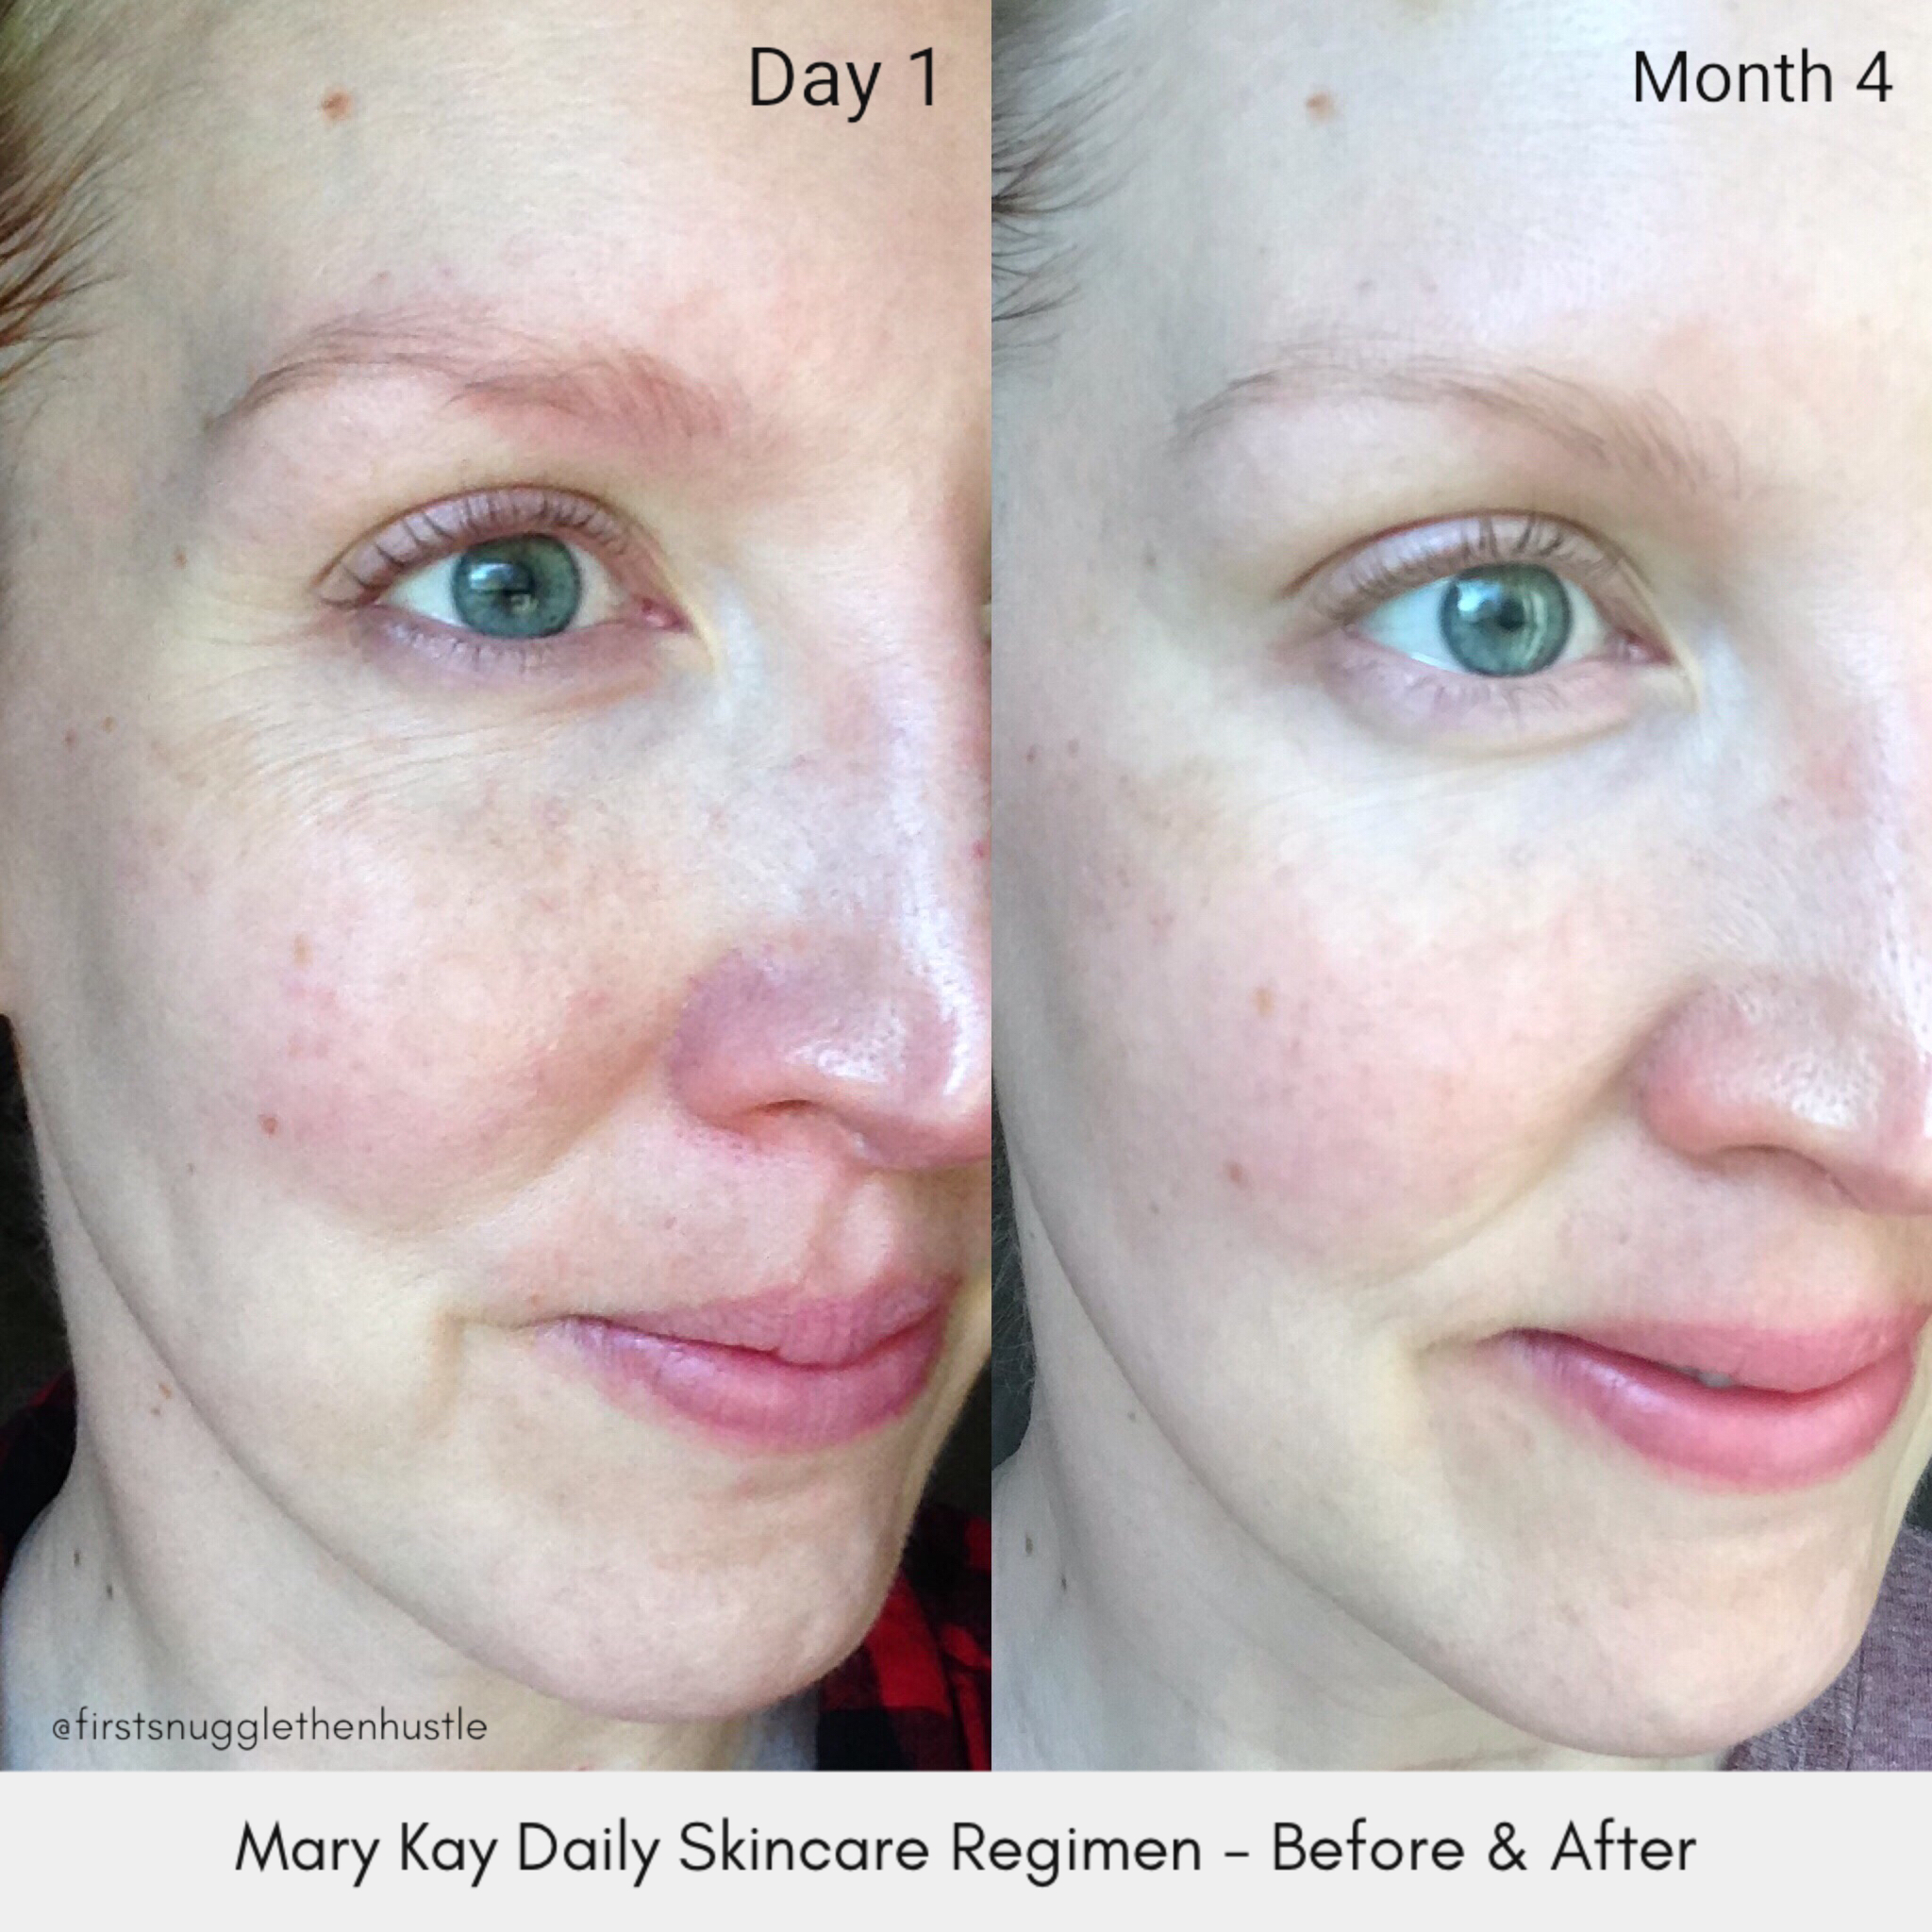 Mary Kay Timewise 3D Skincare Set   used daily for 4 months.